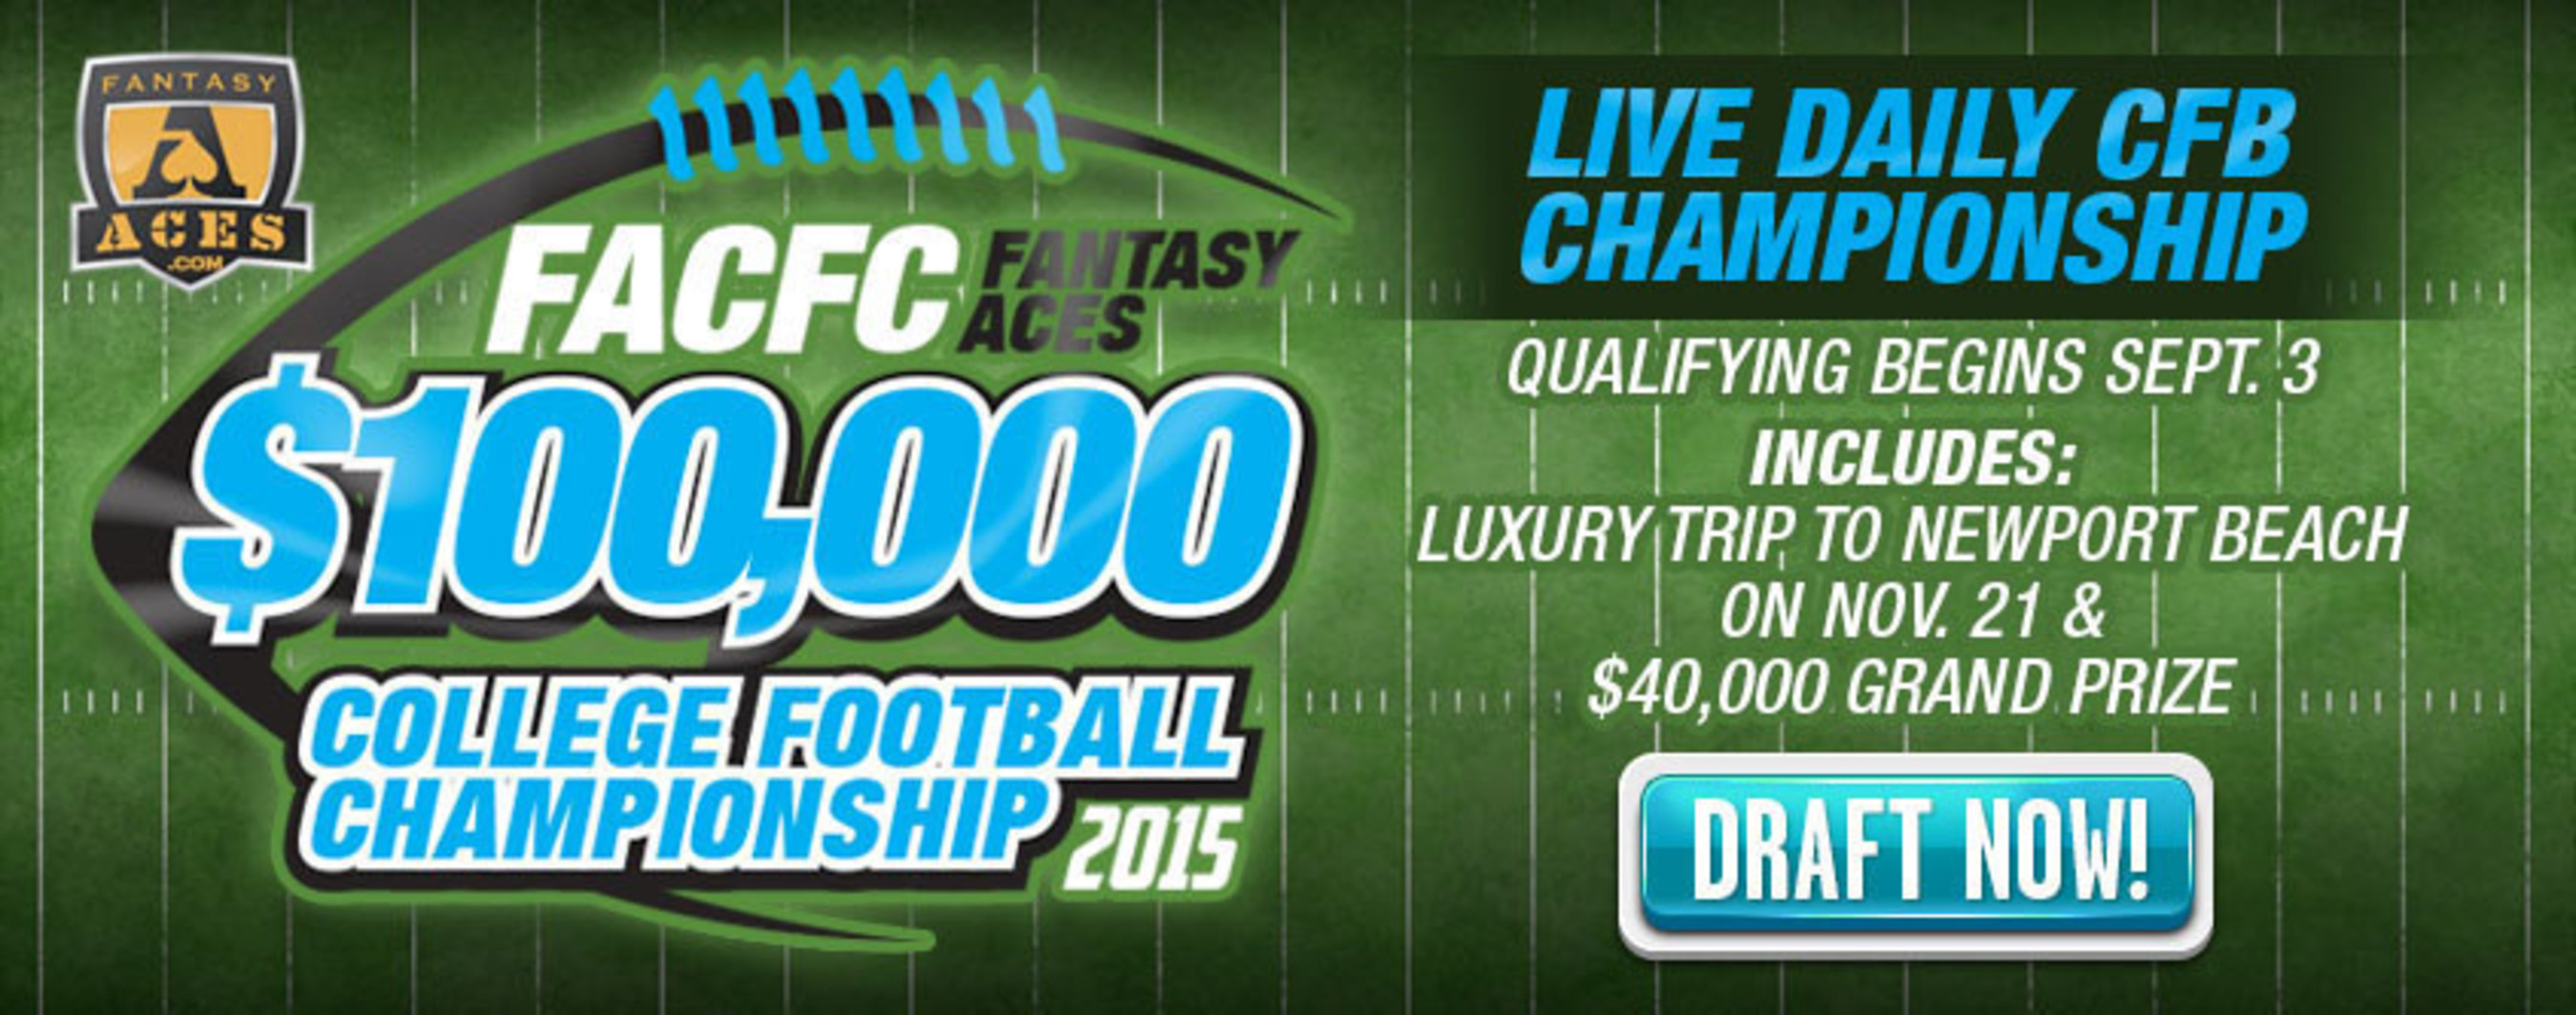 FantasyAces to Host $100,000 Live Final College Football Championship